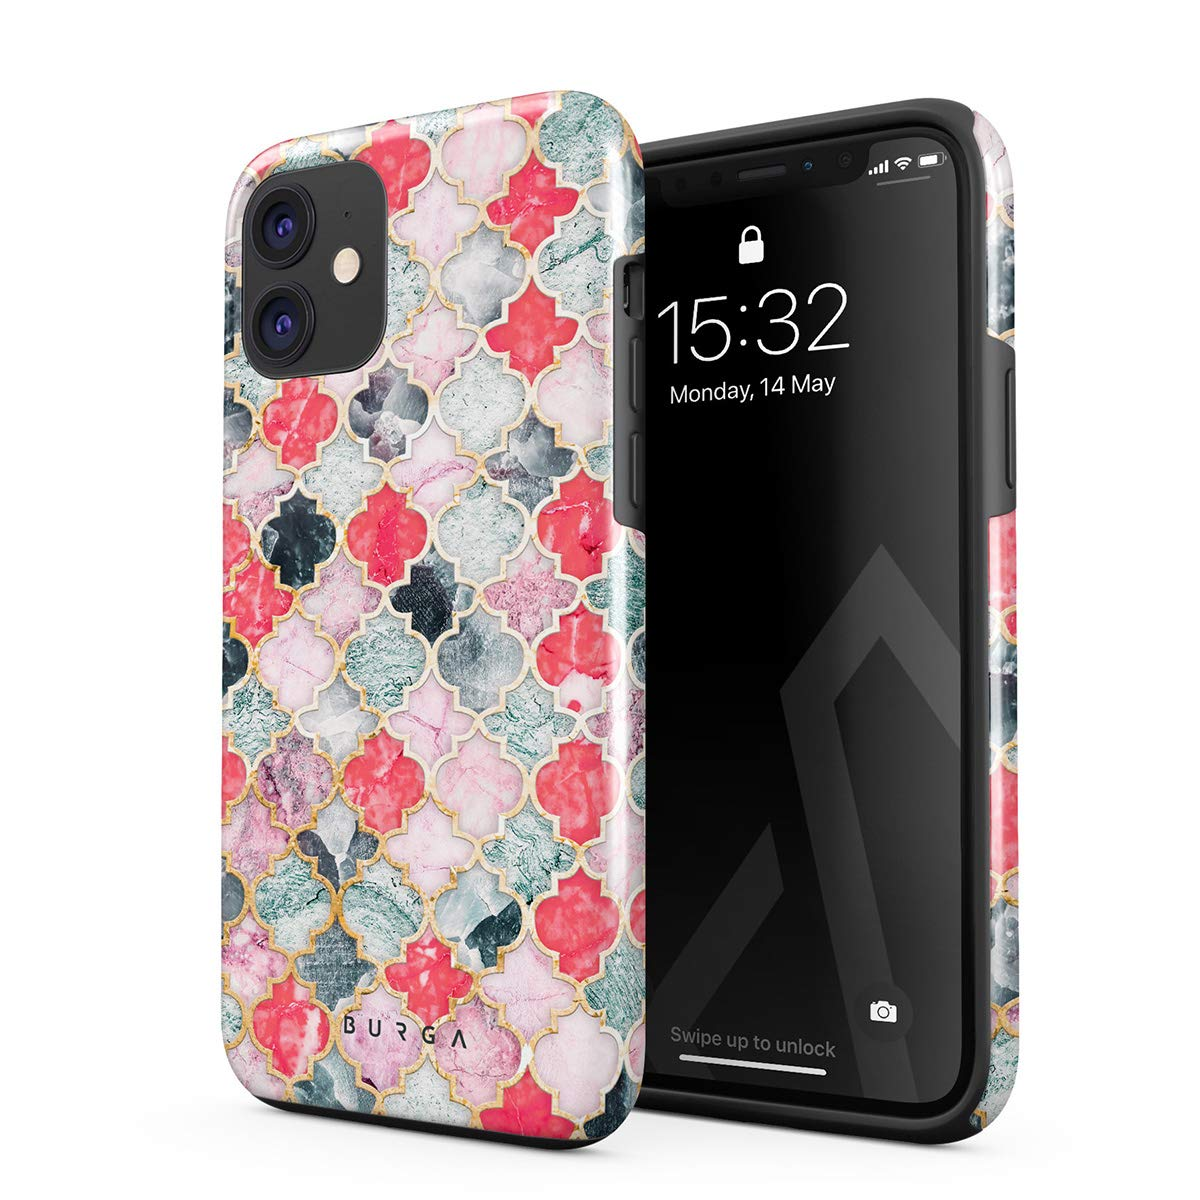 BURGA Phone Case Compatible with iPhone 11 - Sweet Chilli Moroccan Tiles Pattern Marrakesh Mosaic Cute Case for Girls Heavy Duty Shockproof Dual Layer Hard Shell + Silicone Protective Cover